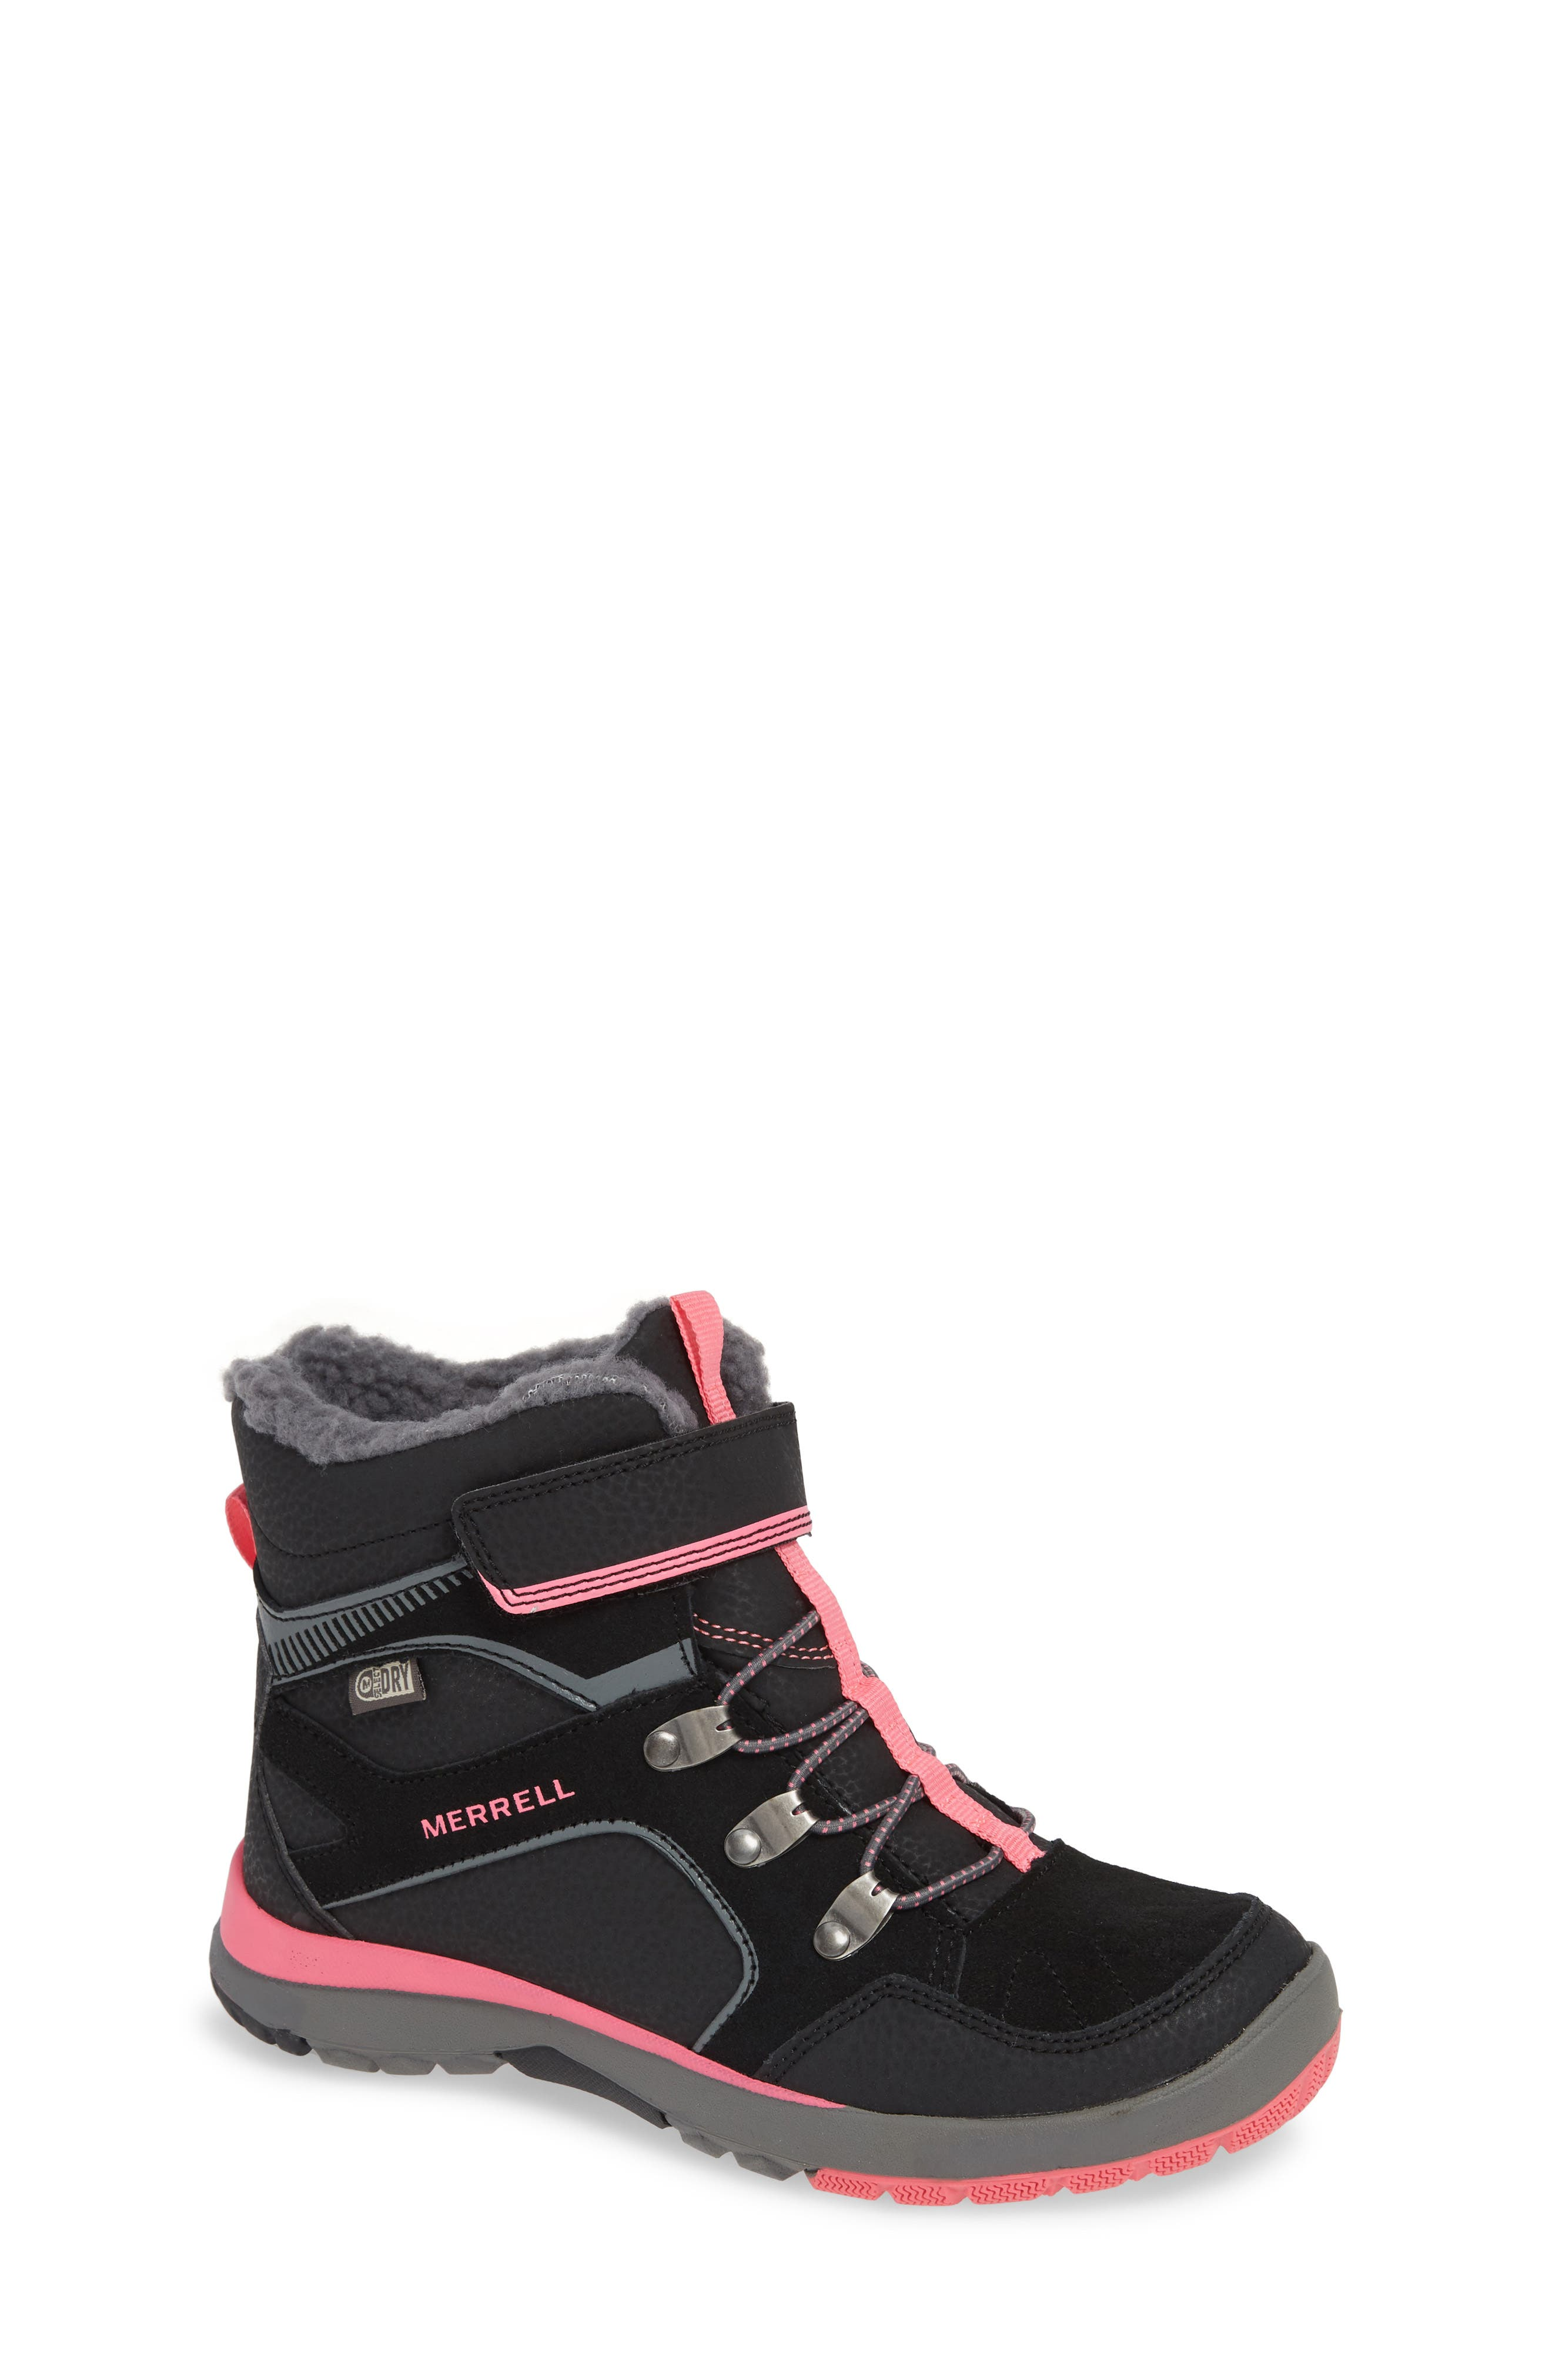 Moab FST Polar Mid Waterproof Insulated Sneaker Boot,                             Main thumbnail 1, color,                             BLACK/ PINK